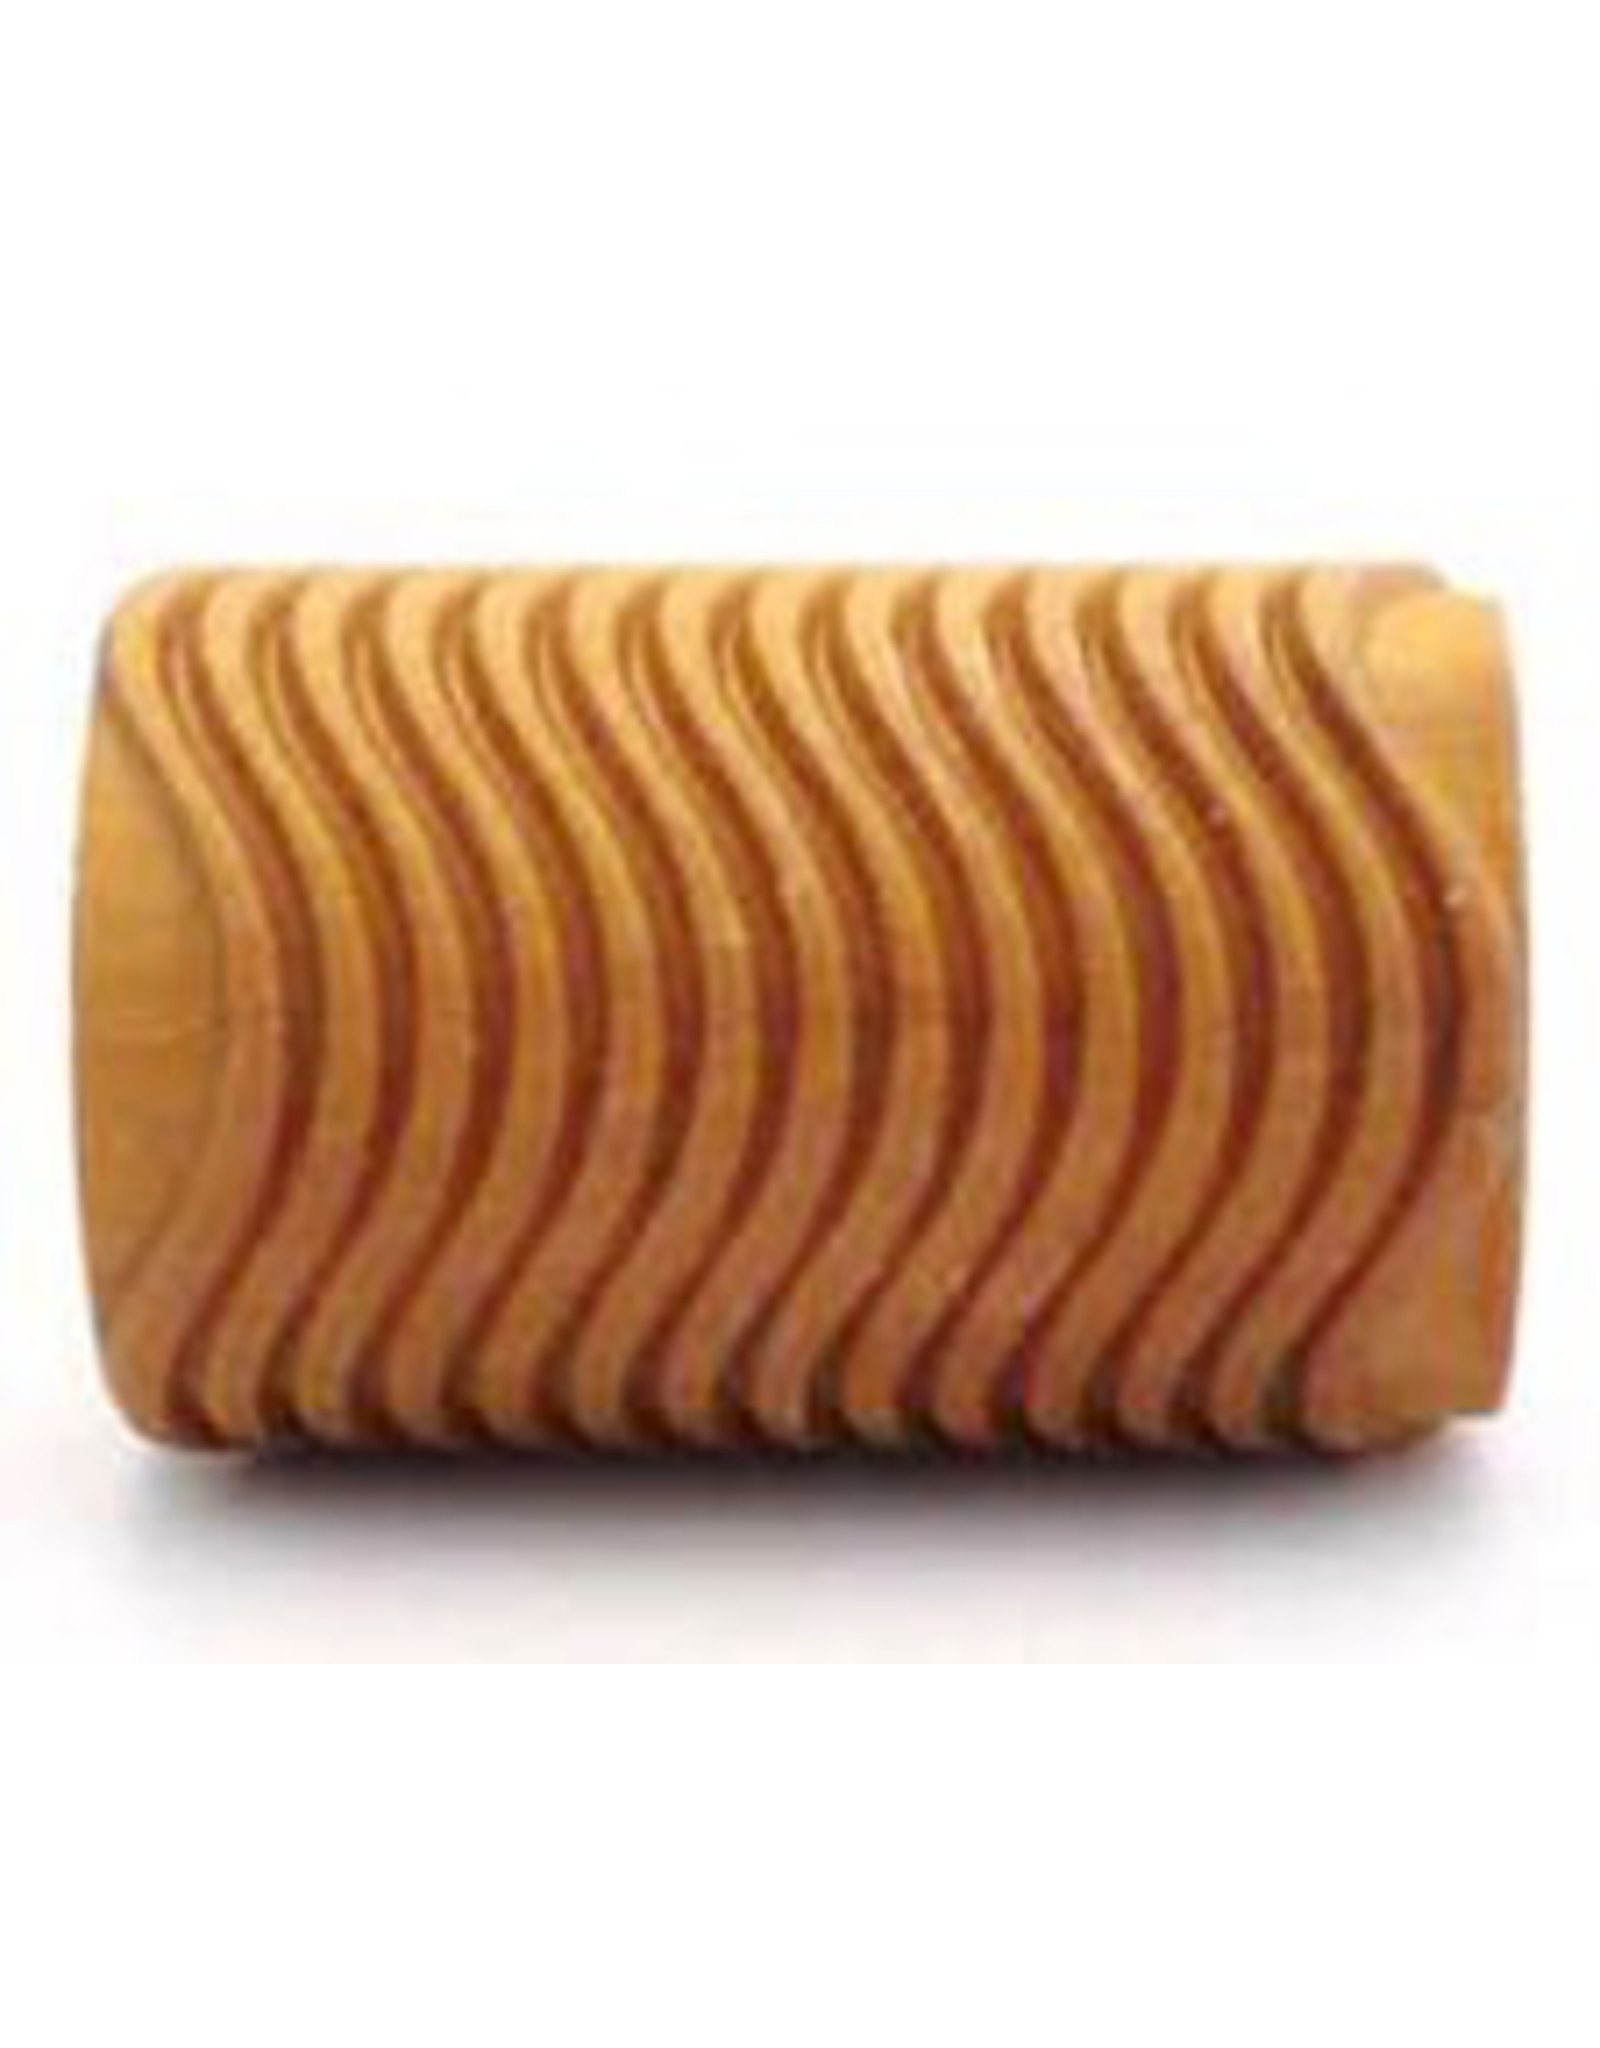 MKM tools Wavy lines Pattern roller